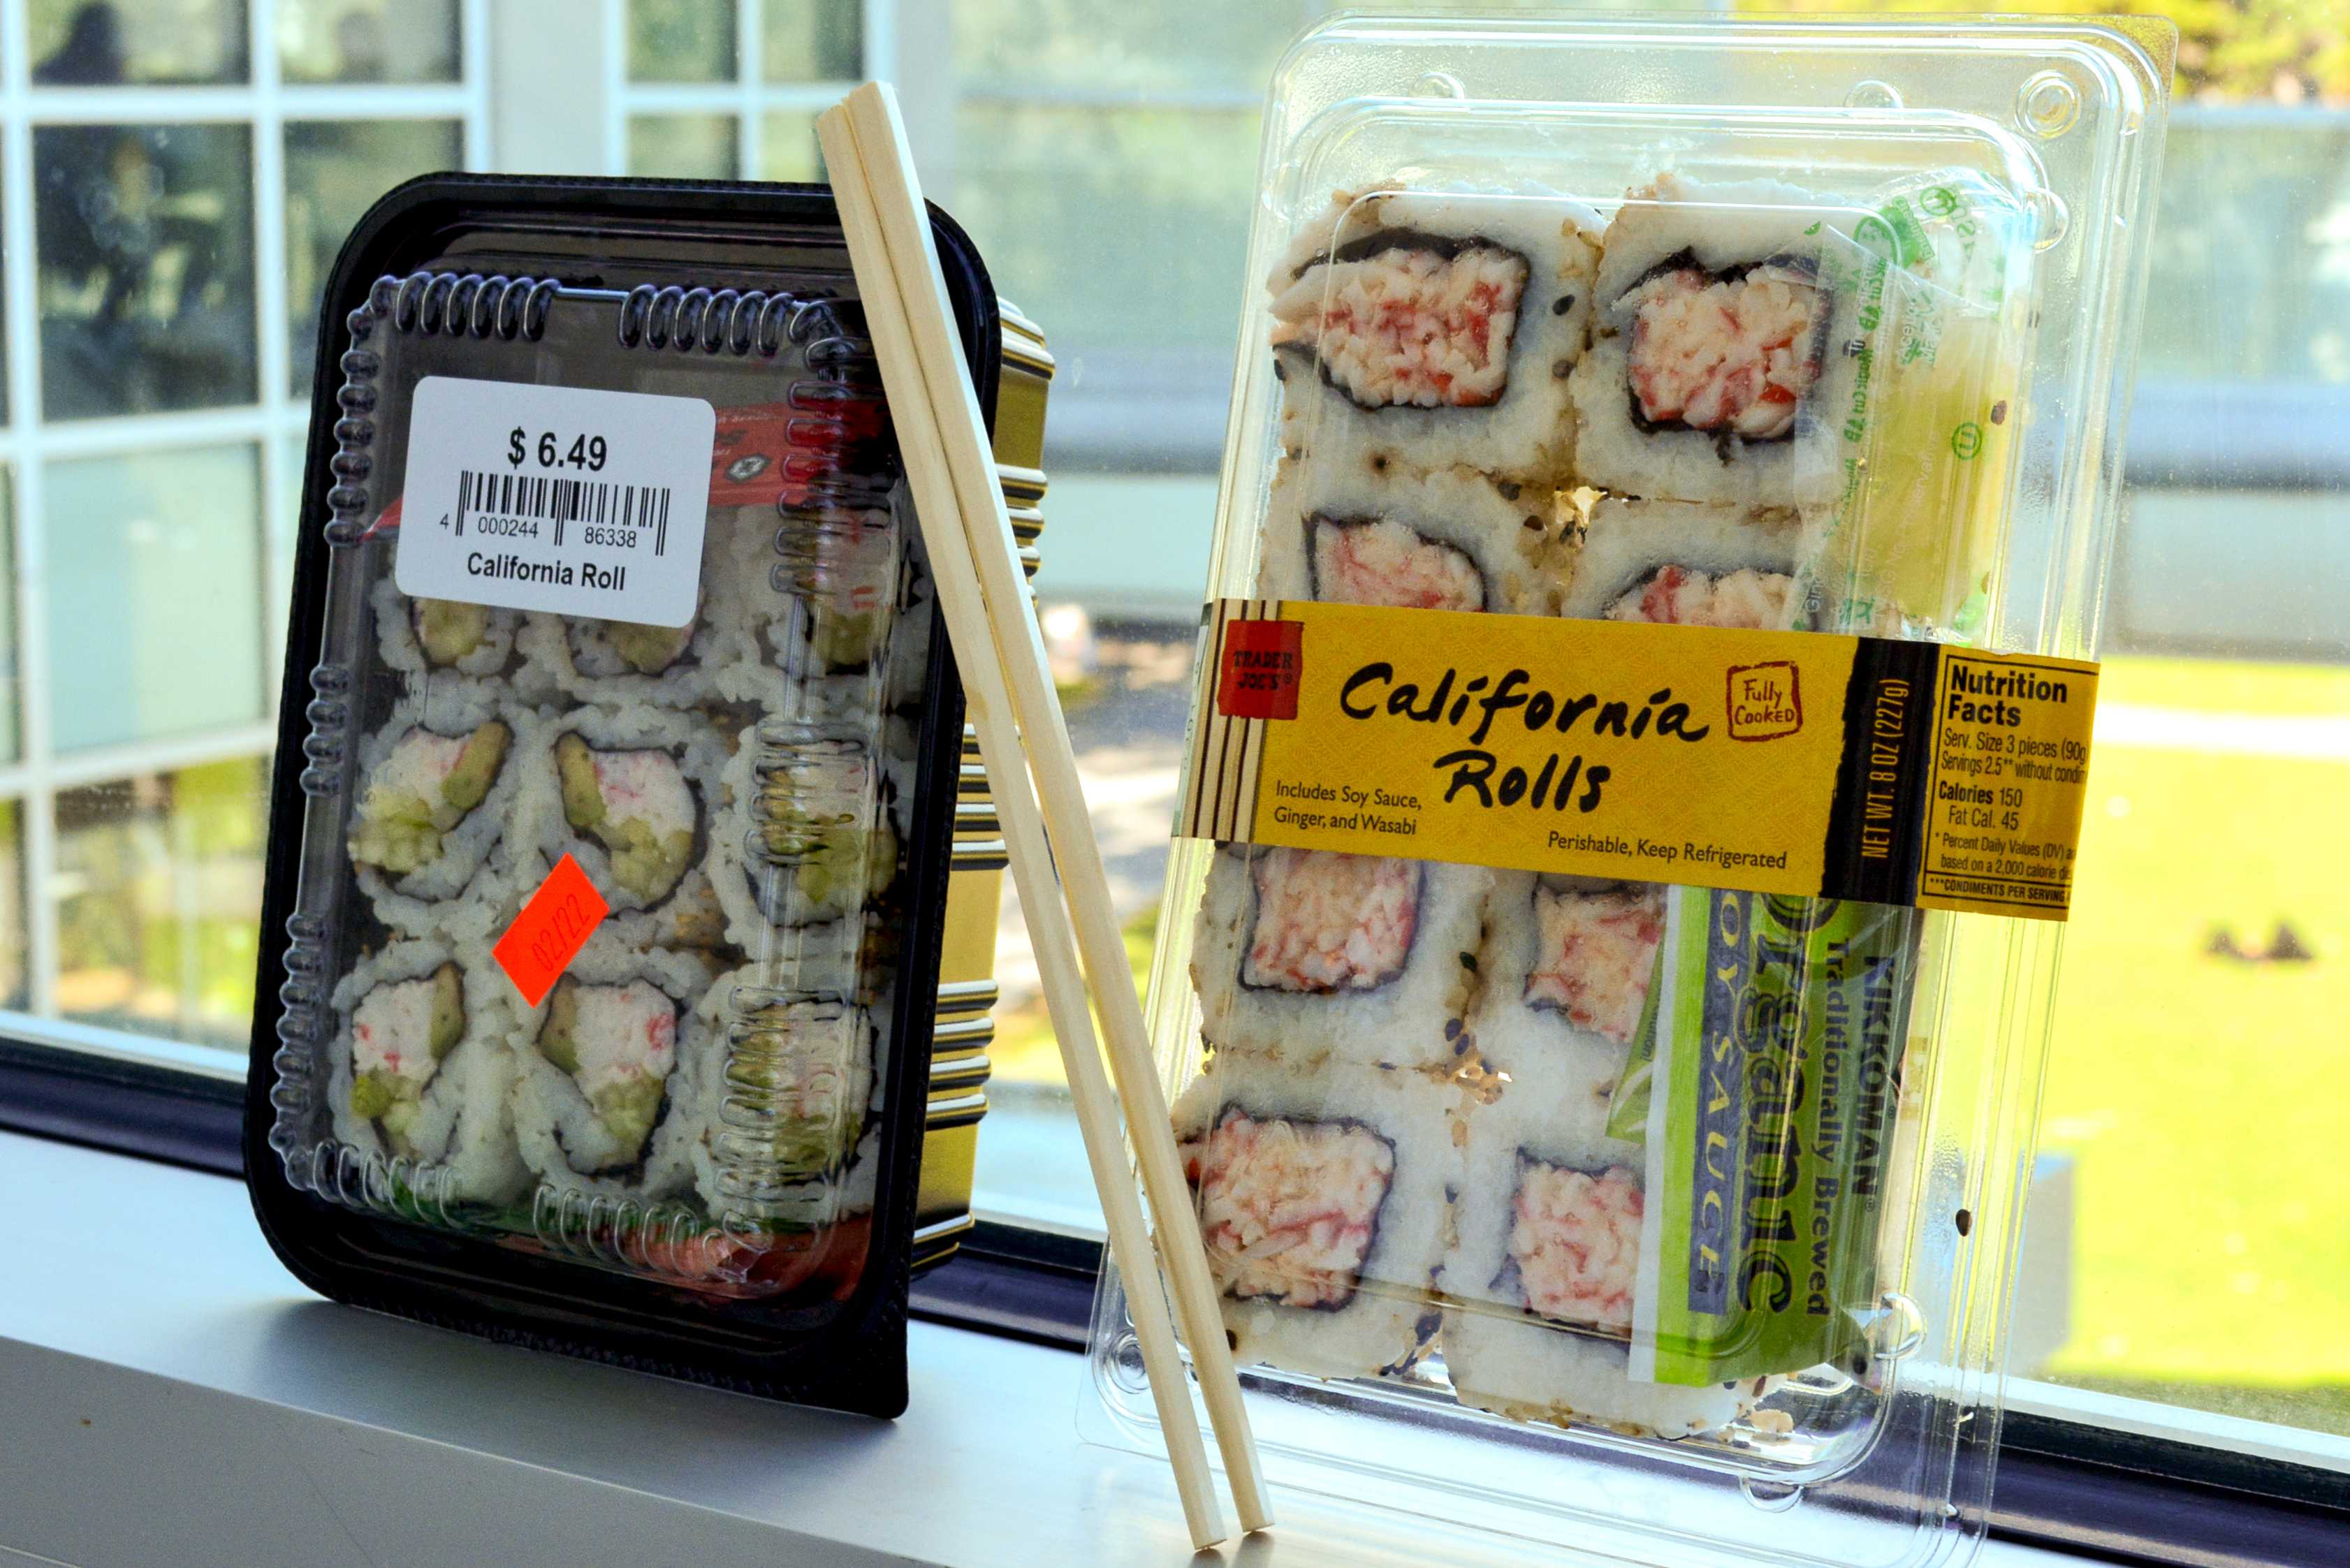 Making the Most with Madison: The best worst sushi around campus